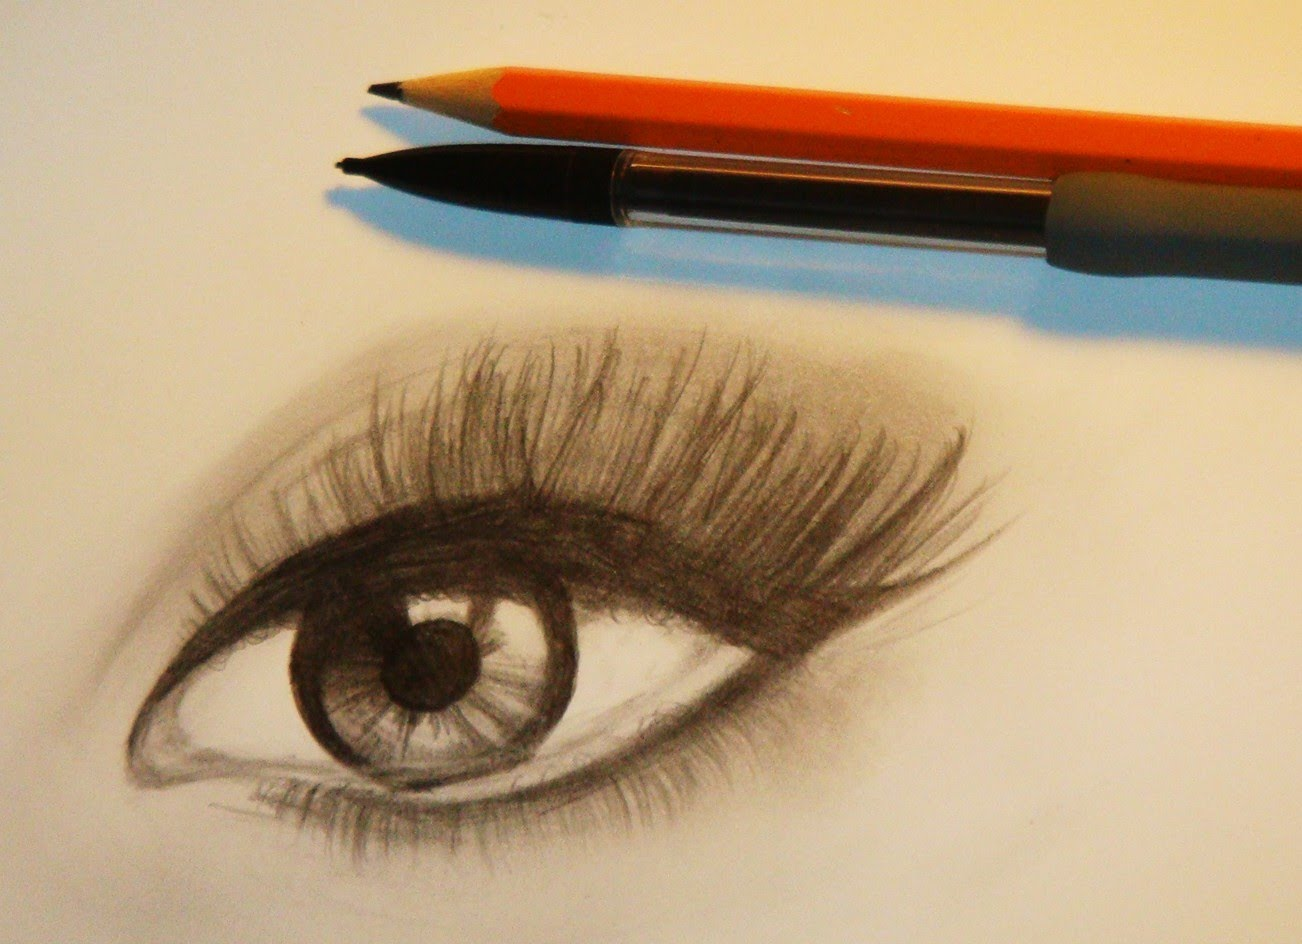 1302x944 How To Draw A Realistic Eye (With Makeup)